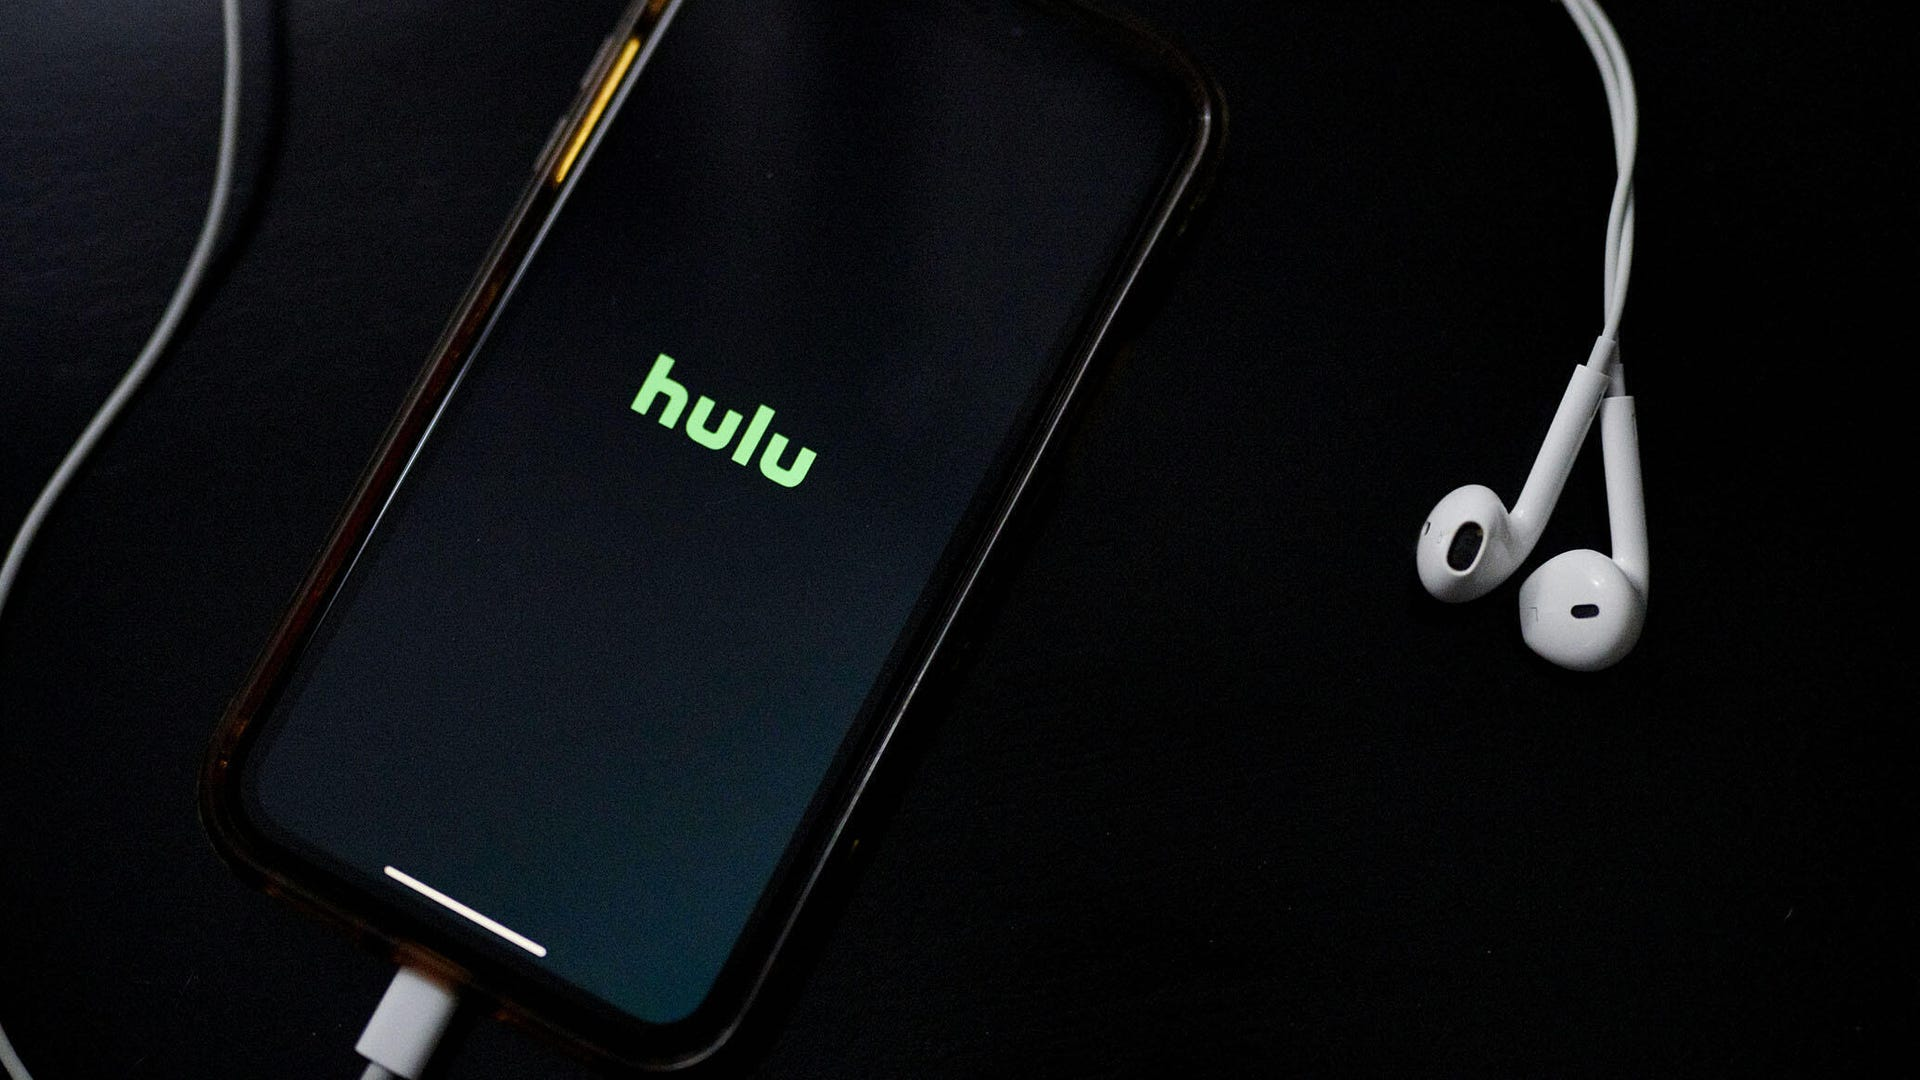 Hulu on a phone with earbuds